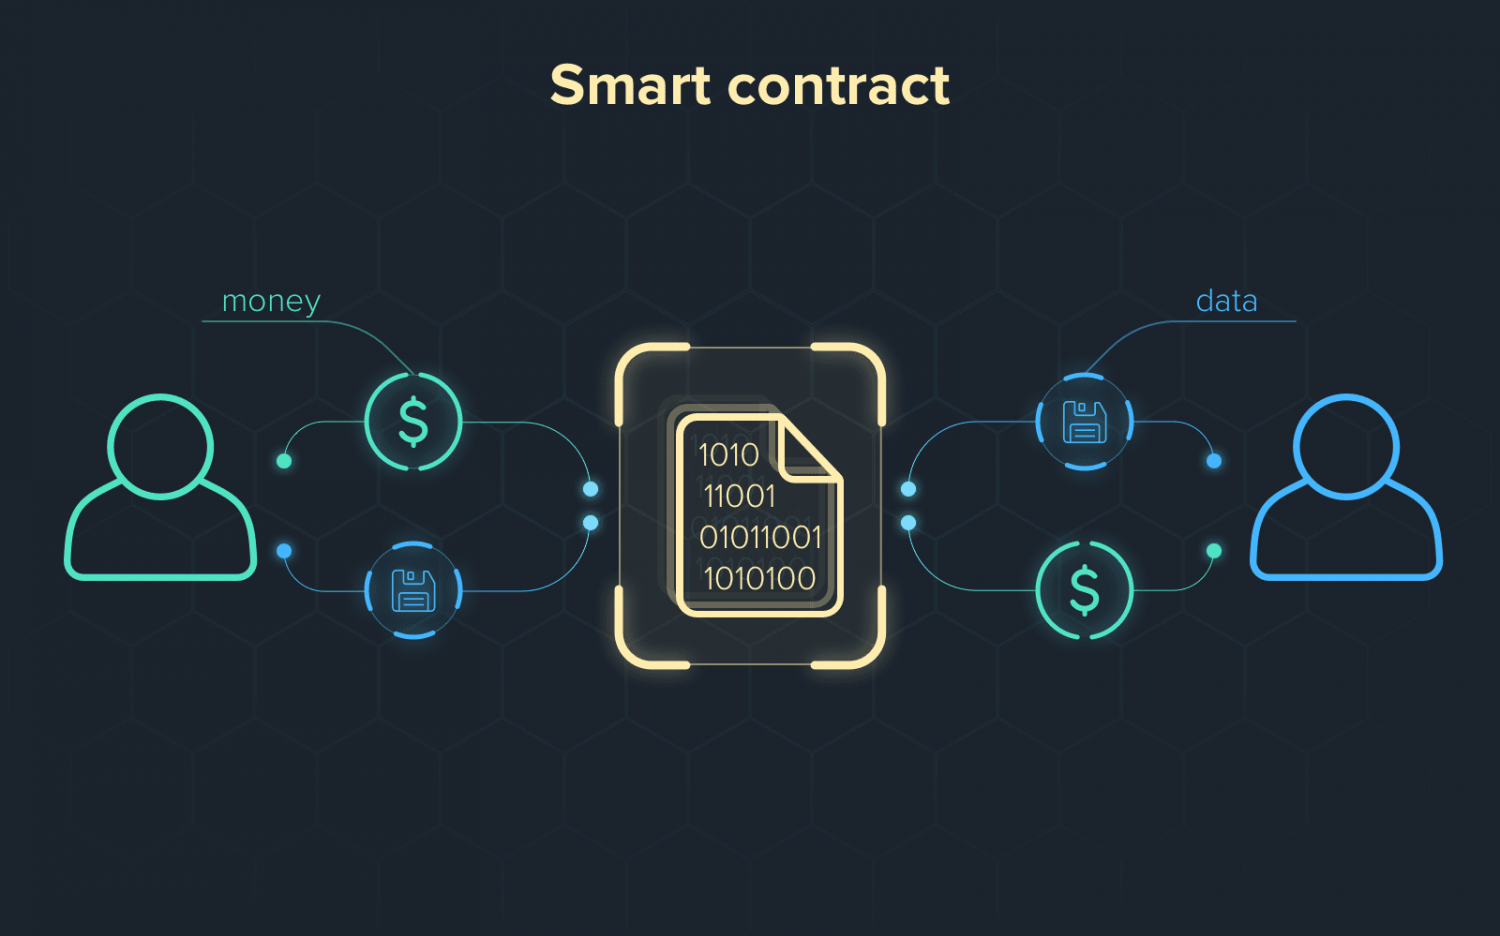 How to Get Started with Smart Contract Development